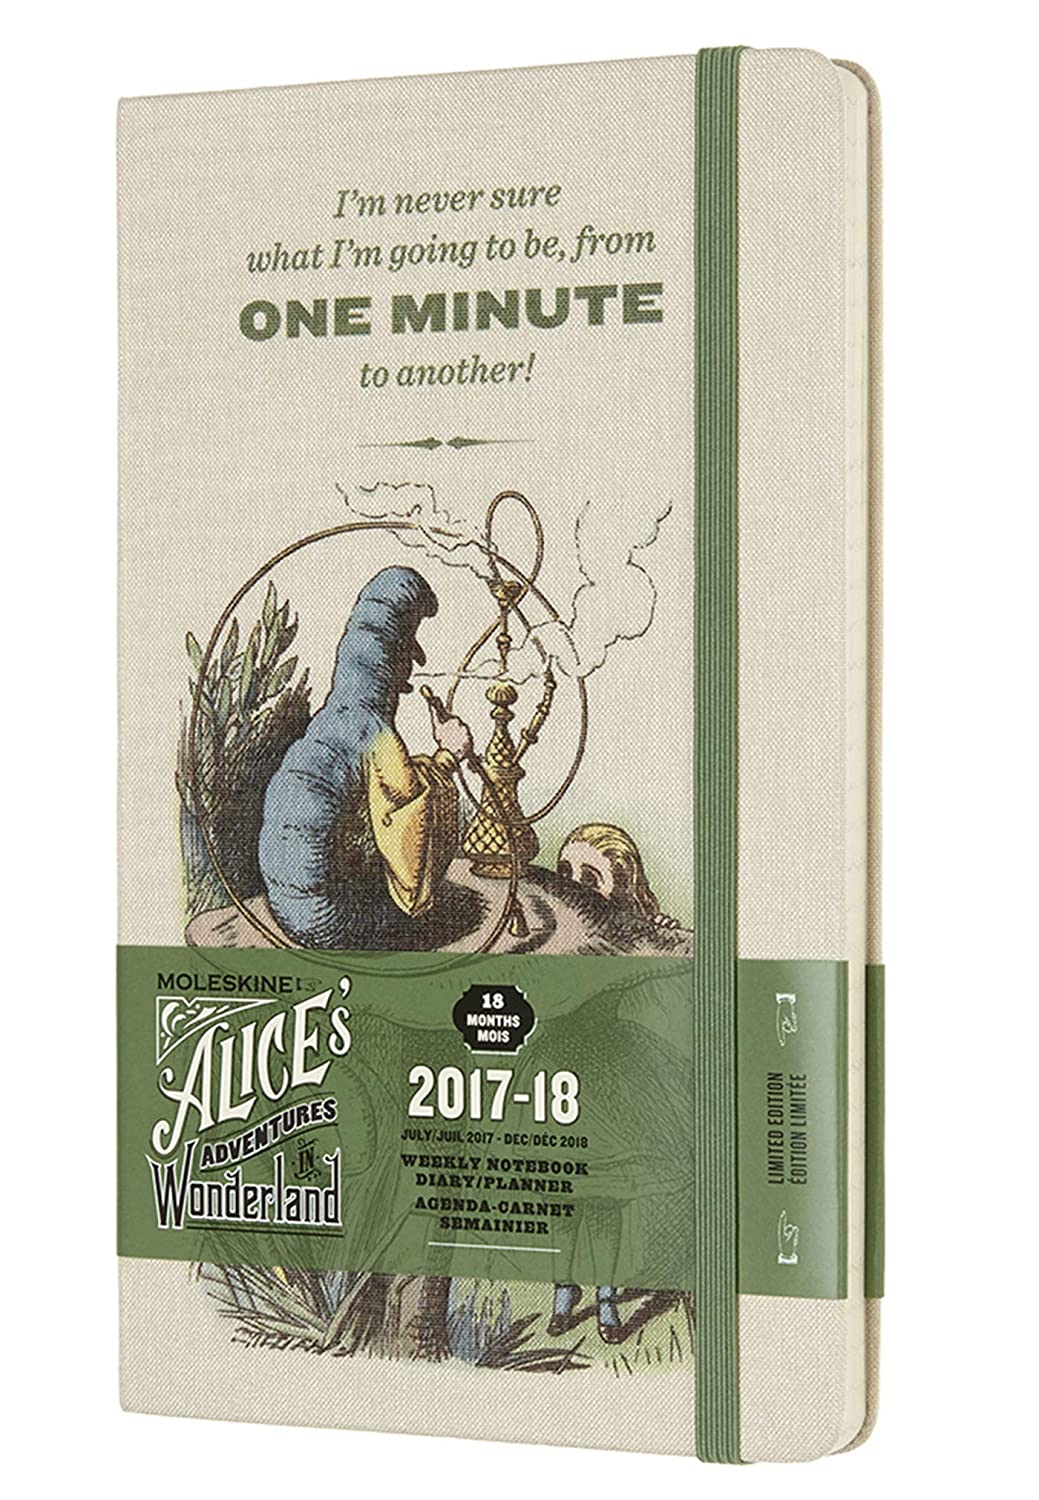 Moleskine Limited Edition Alice in Wonderland 18 Month 2017-2018 Weekly Planner, Hard Cover, Large (5